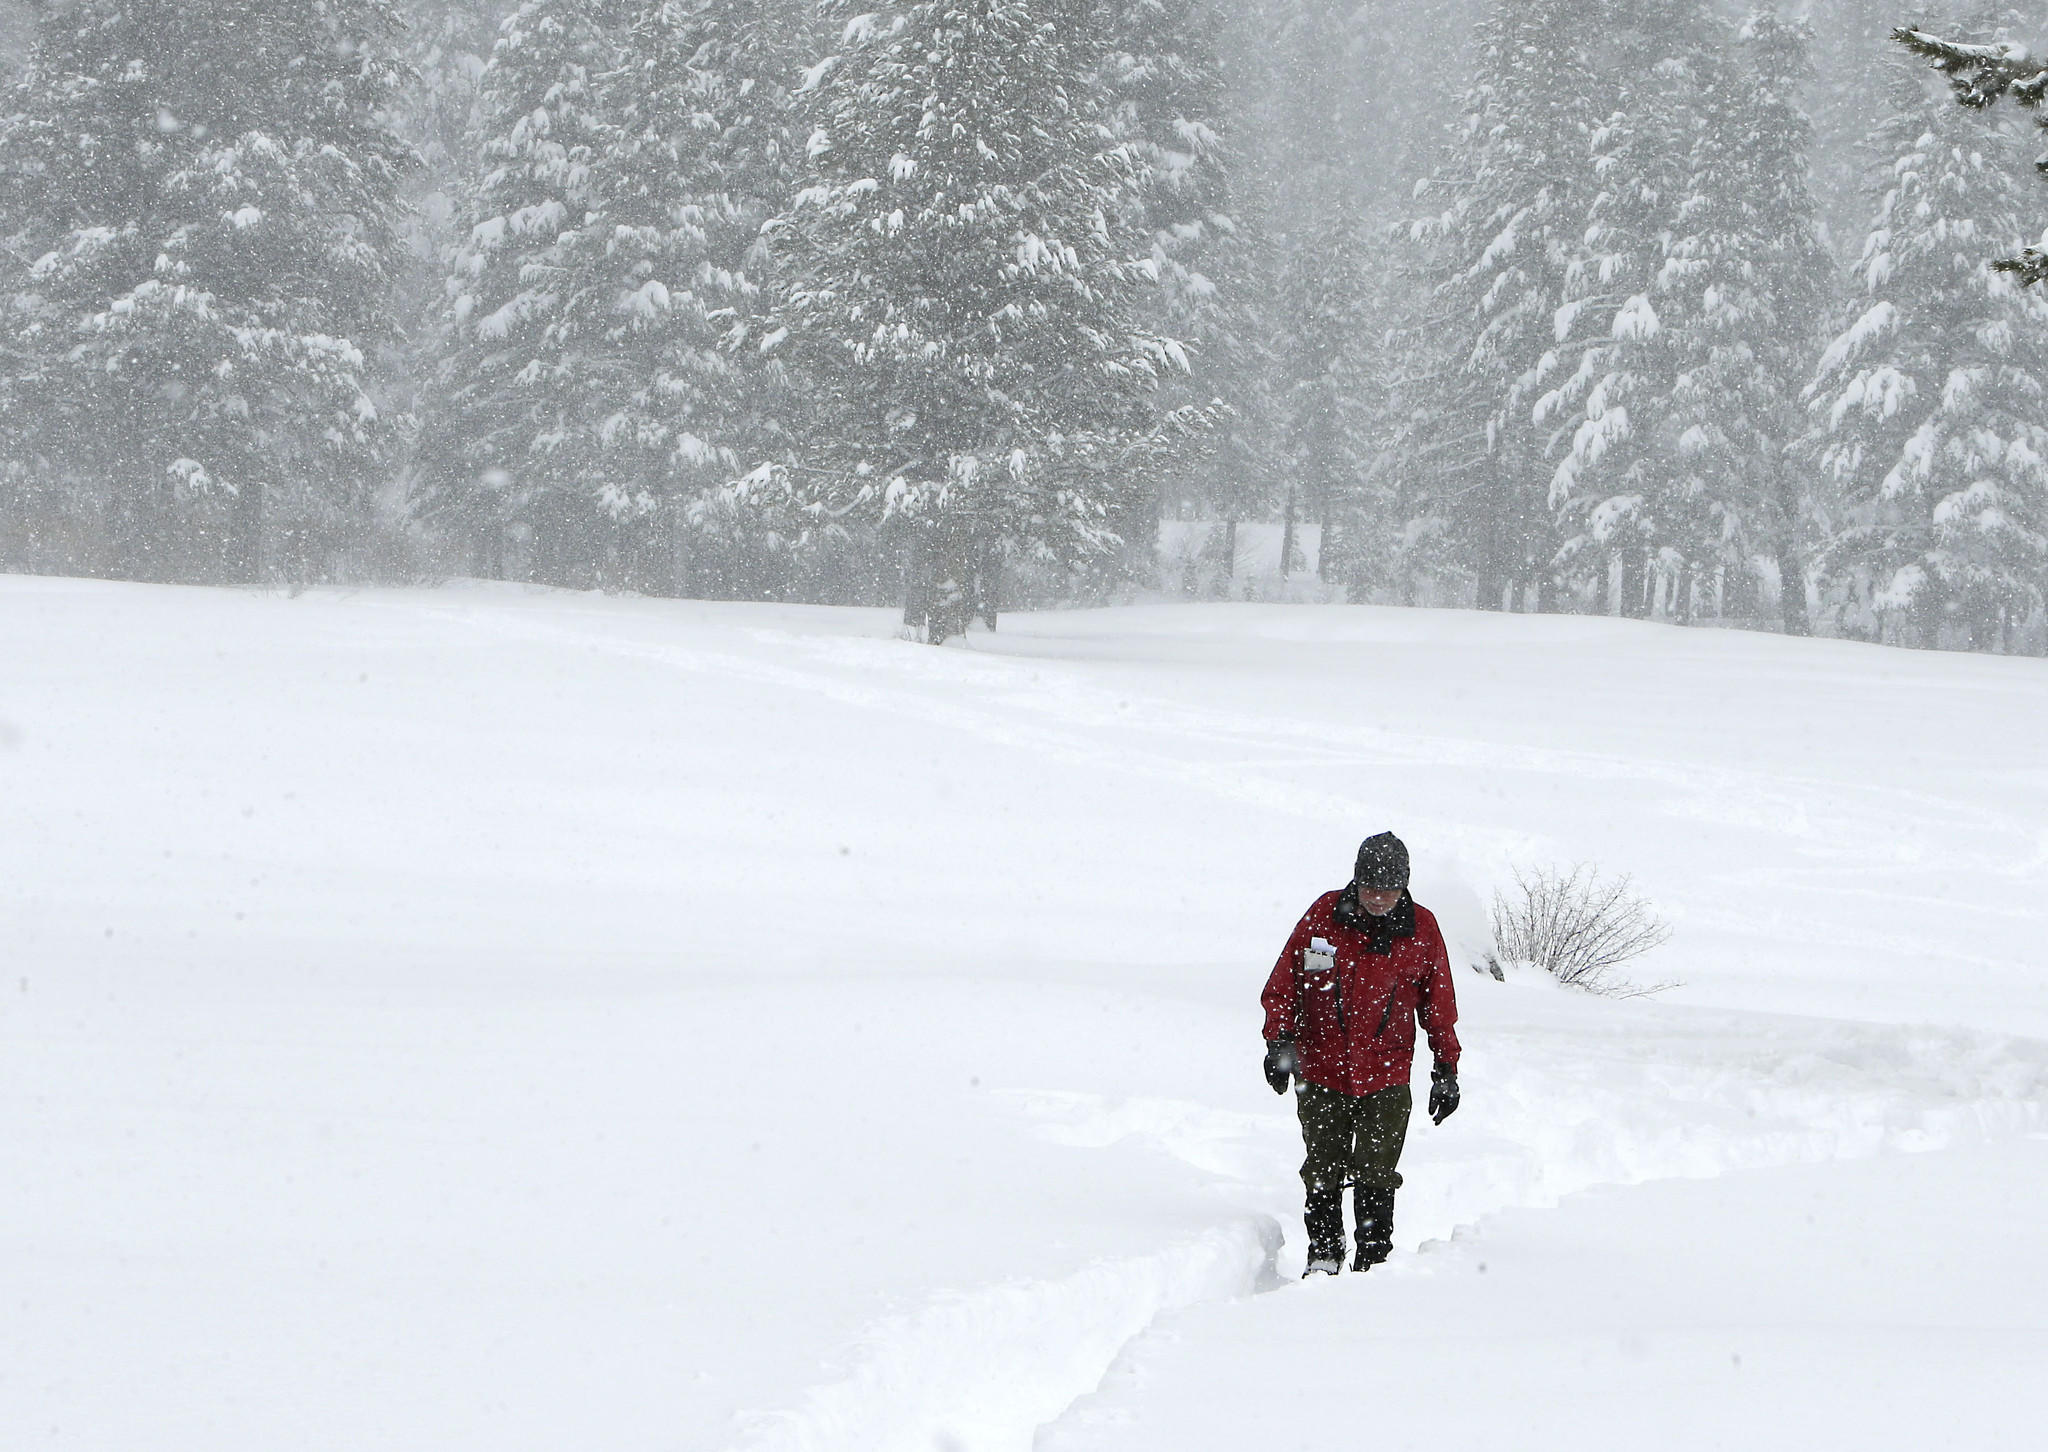 Late winter storms have improved the Sierra Nevada snowpack and helped boost levels of the state's two largest reservoirs. Above, Frank Gehrke, chief of snow surveys for the Department of Water Resources, crosses a snow-covered meadow Tuesday as he returns from conducting the snowpack survey at Echo Summit.